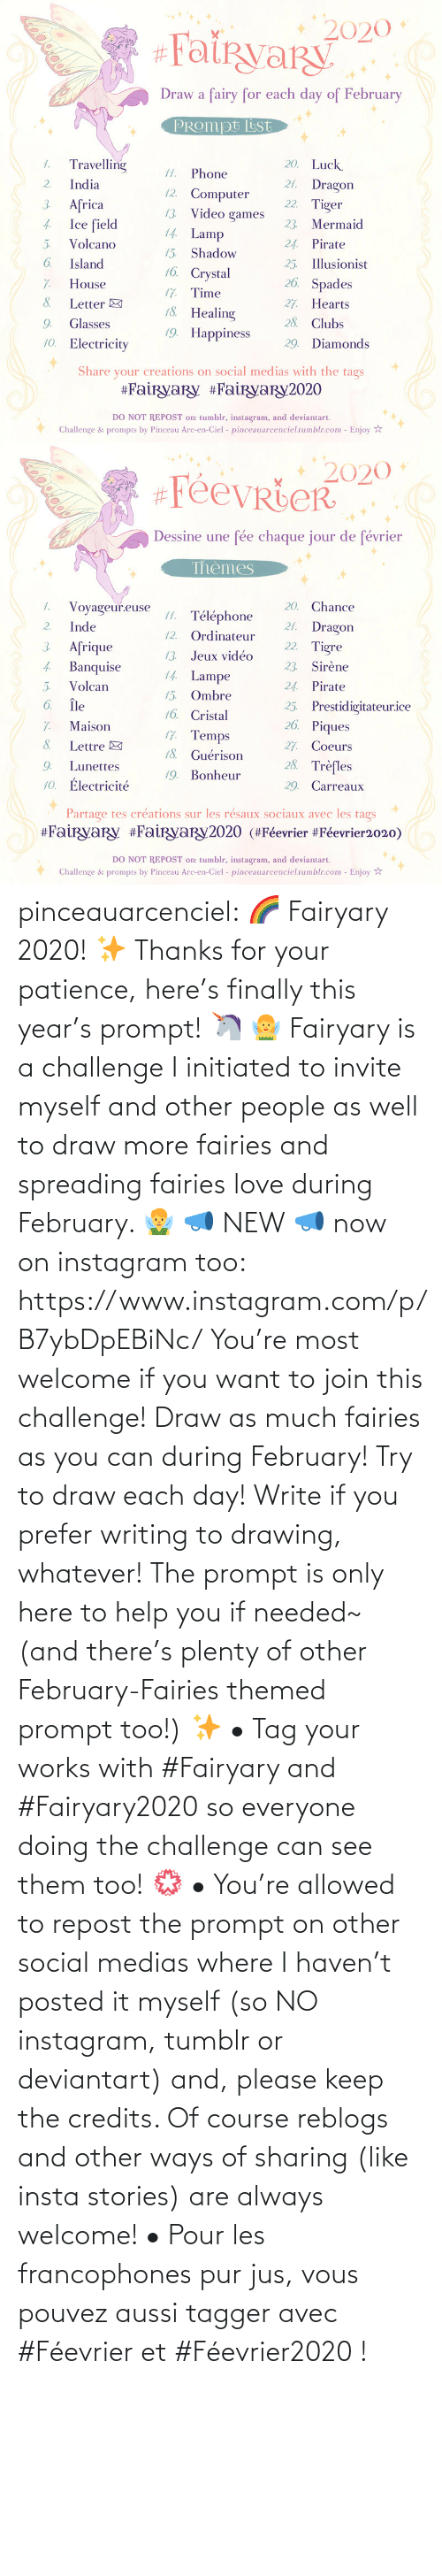 Search: pinceauarcenciel: 🌈 Fairyary 2020! ✨ Thanks for your patience, here's finally this year's prompt! 🦄 🧚‍♀️ Fairyary is a challenge I initiated to invite myself and other people as well to draw more fairies and spreading fairies love during February. 🧚‍♂️ 📣 NEW 📣 now on instagram too: https://www.instagram.com/p/B7ybDpEBiNc/ You're most welcome if you want to join this challenge! Draw as much fairies as you can during February! Try to draw each day! Write if you prefer writing to drawing, whatever! The prompt is only here to help you if needed~ (and there's plenty of other February-Fairies themed prompt too!) ✨ • Tag your works with #Fairyary and #Fairyary2020 so everyone doing the challenge can see them too! 💮 • You're allowed to repost the prompt on other social medias where I haven't posted it myself (so NO instagram, tumblr or deviantart) and, please keep the credits. Of course reblogs and other ways of sharing (like insta stories) are always welcome!